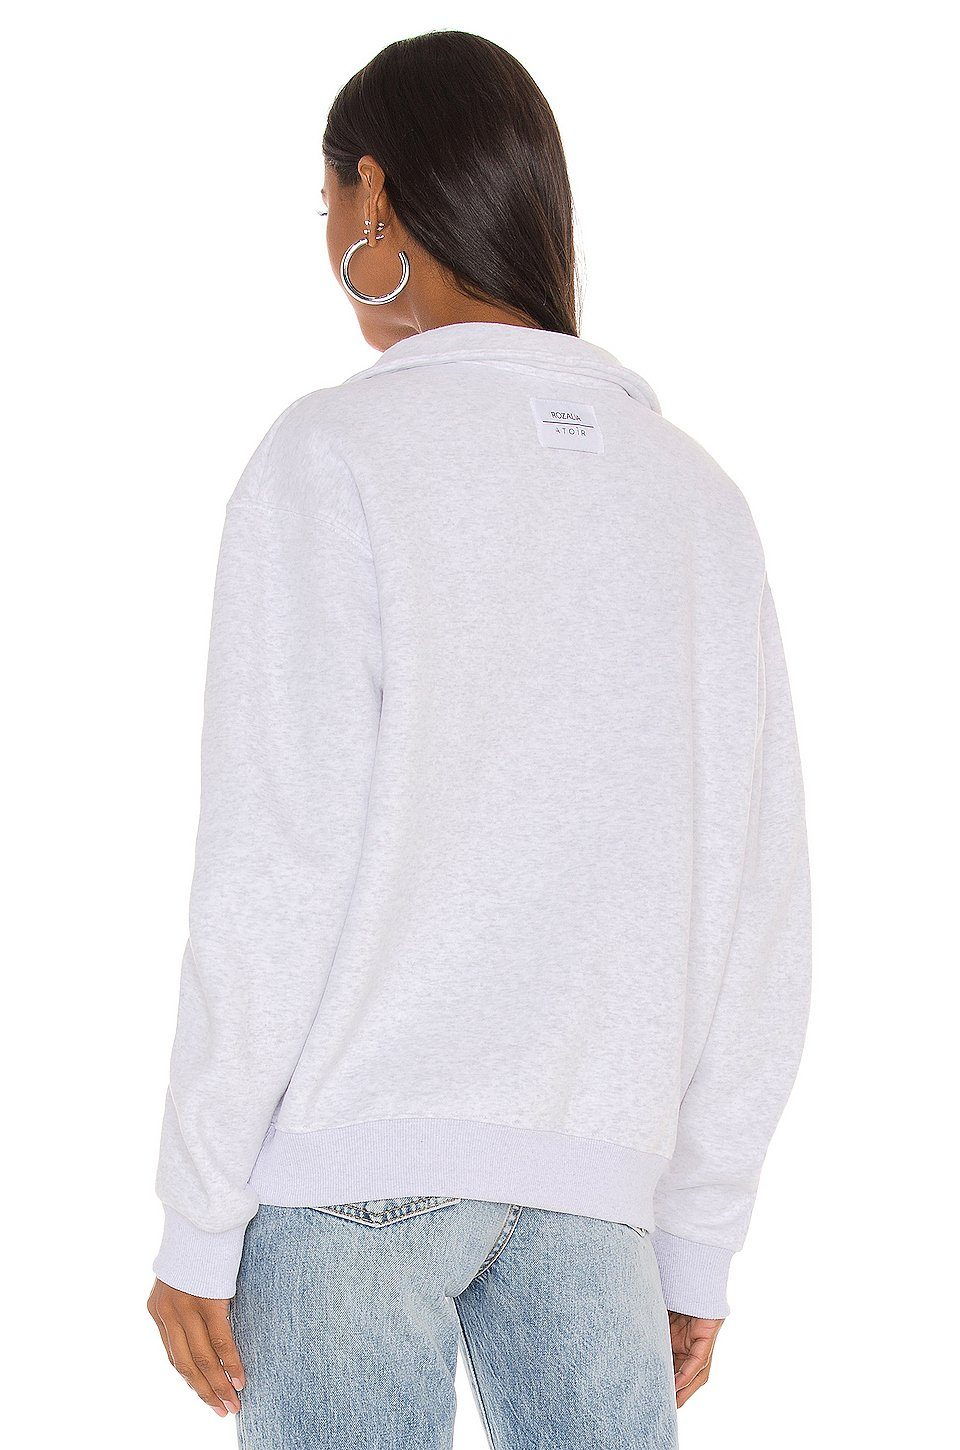 ATOIR | Collared Jumper - Grey Marled